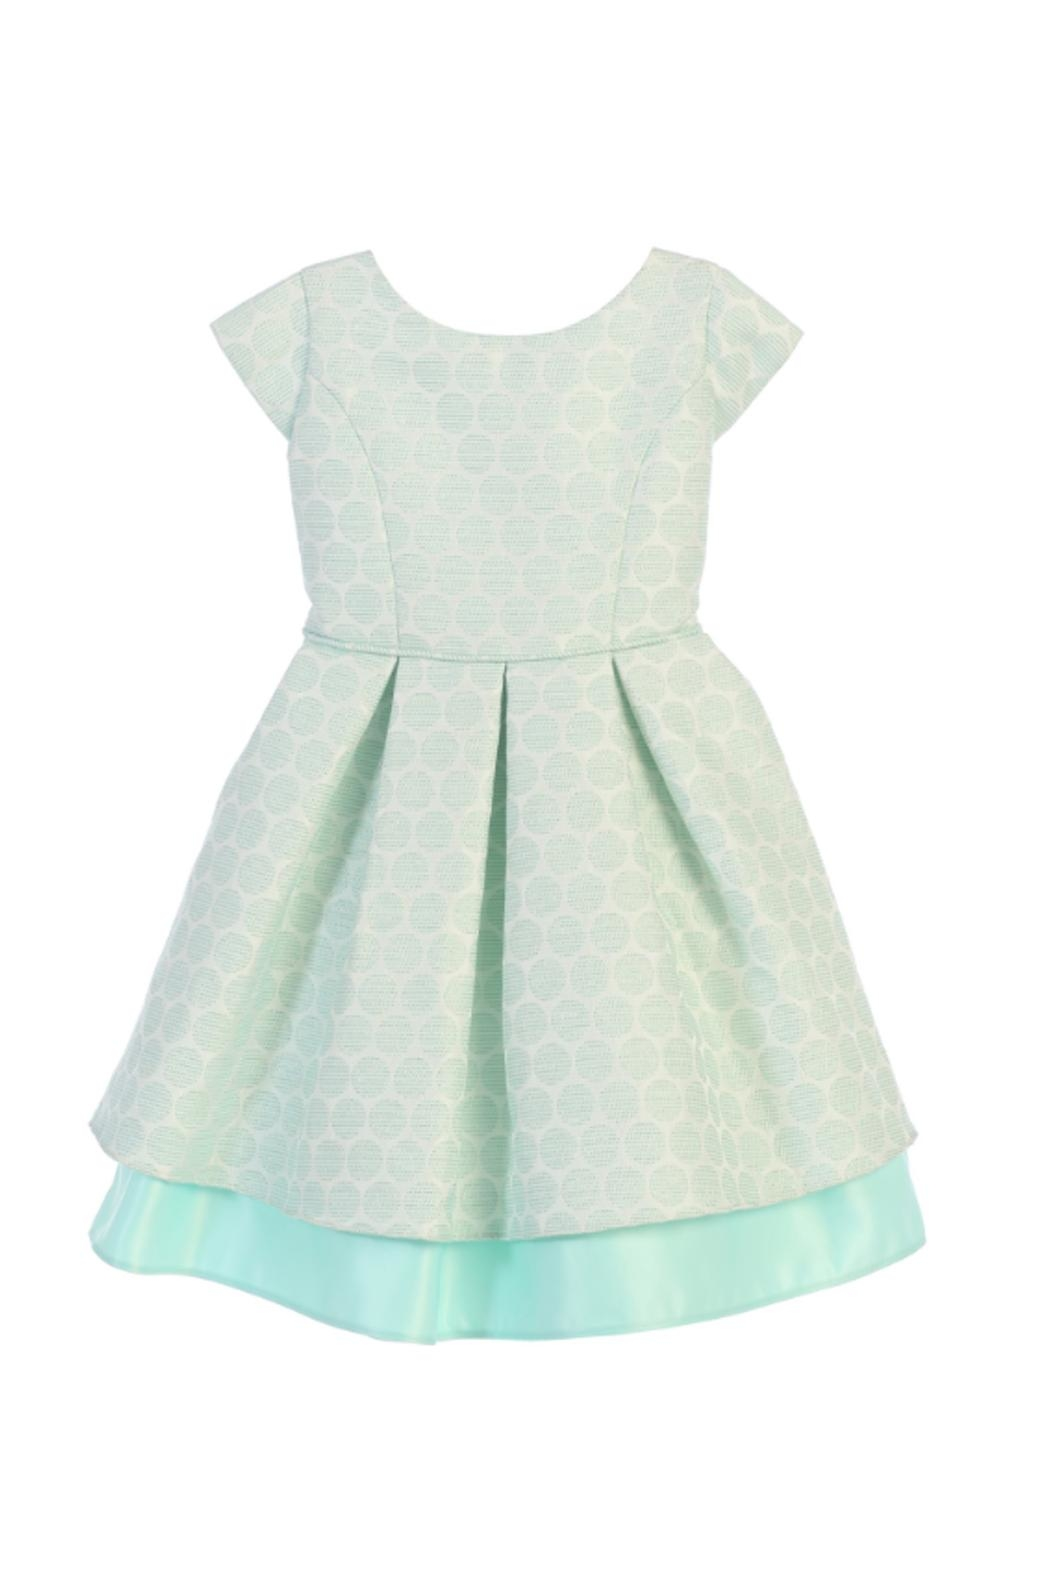 Sweet Kids Polkadot Pleated Dress - Main Image